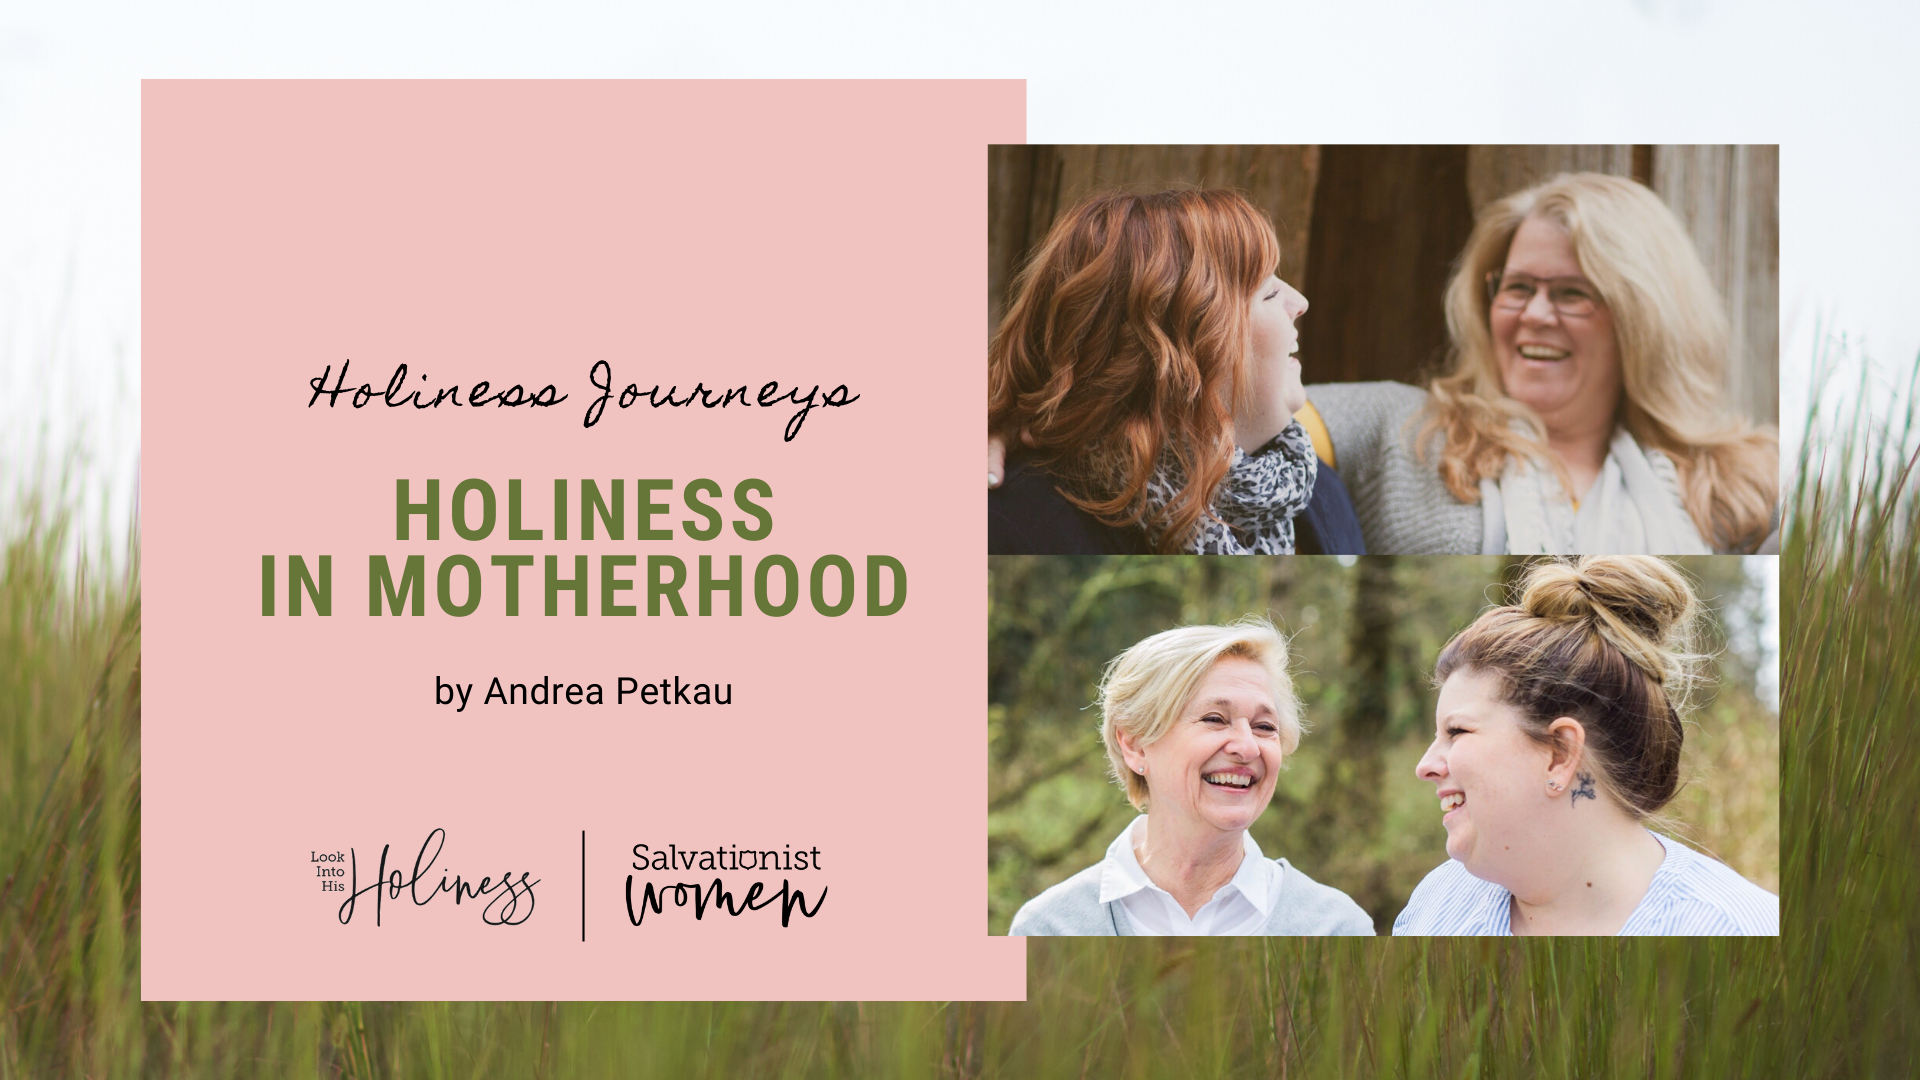 Holiness Journeys - Holiness In Motherhood